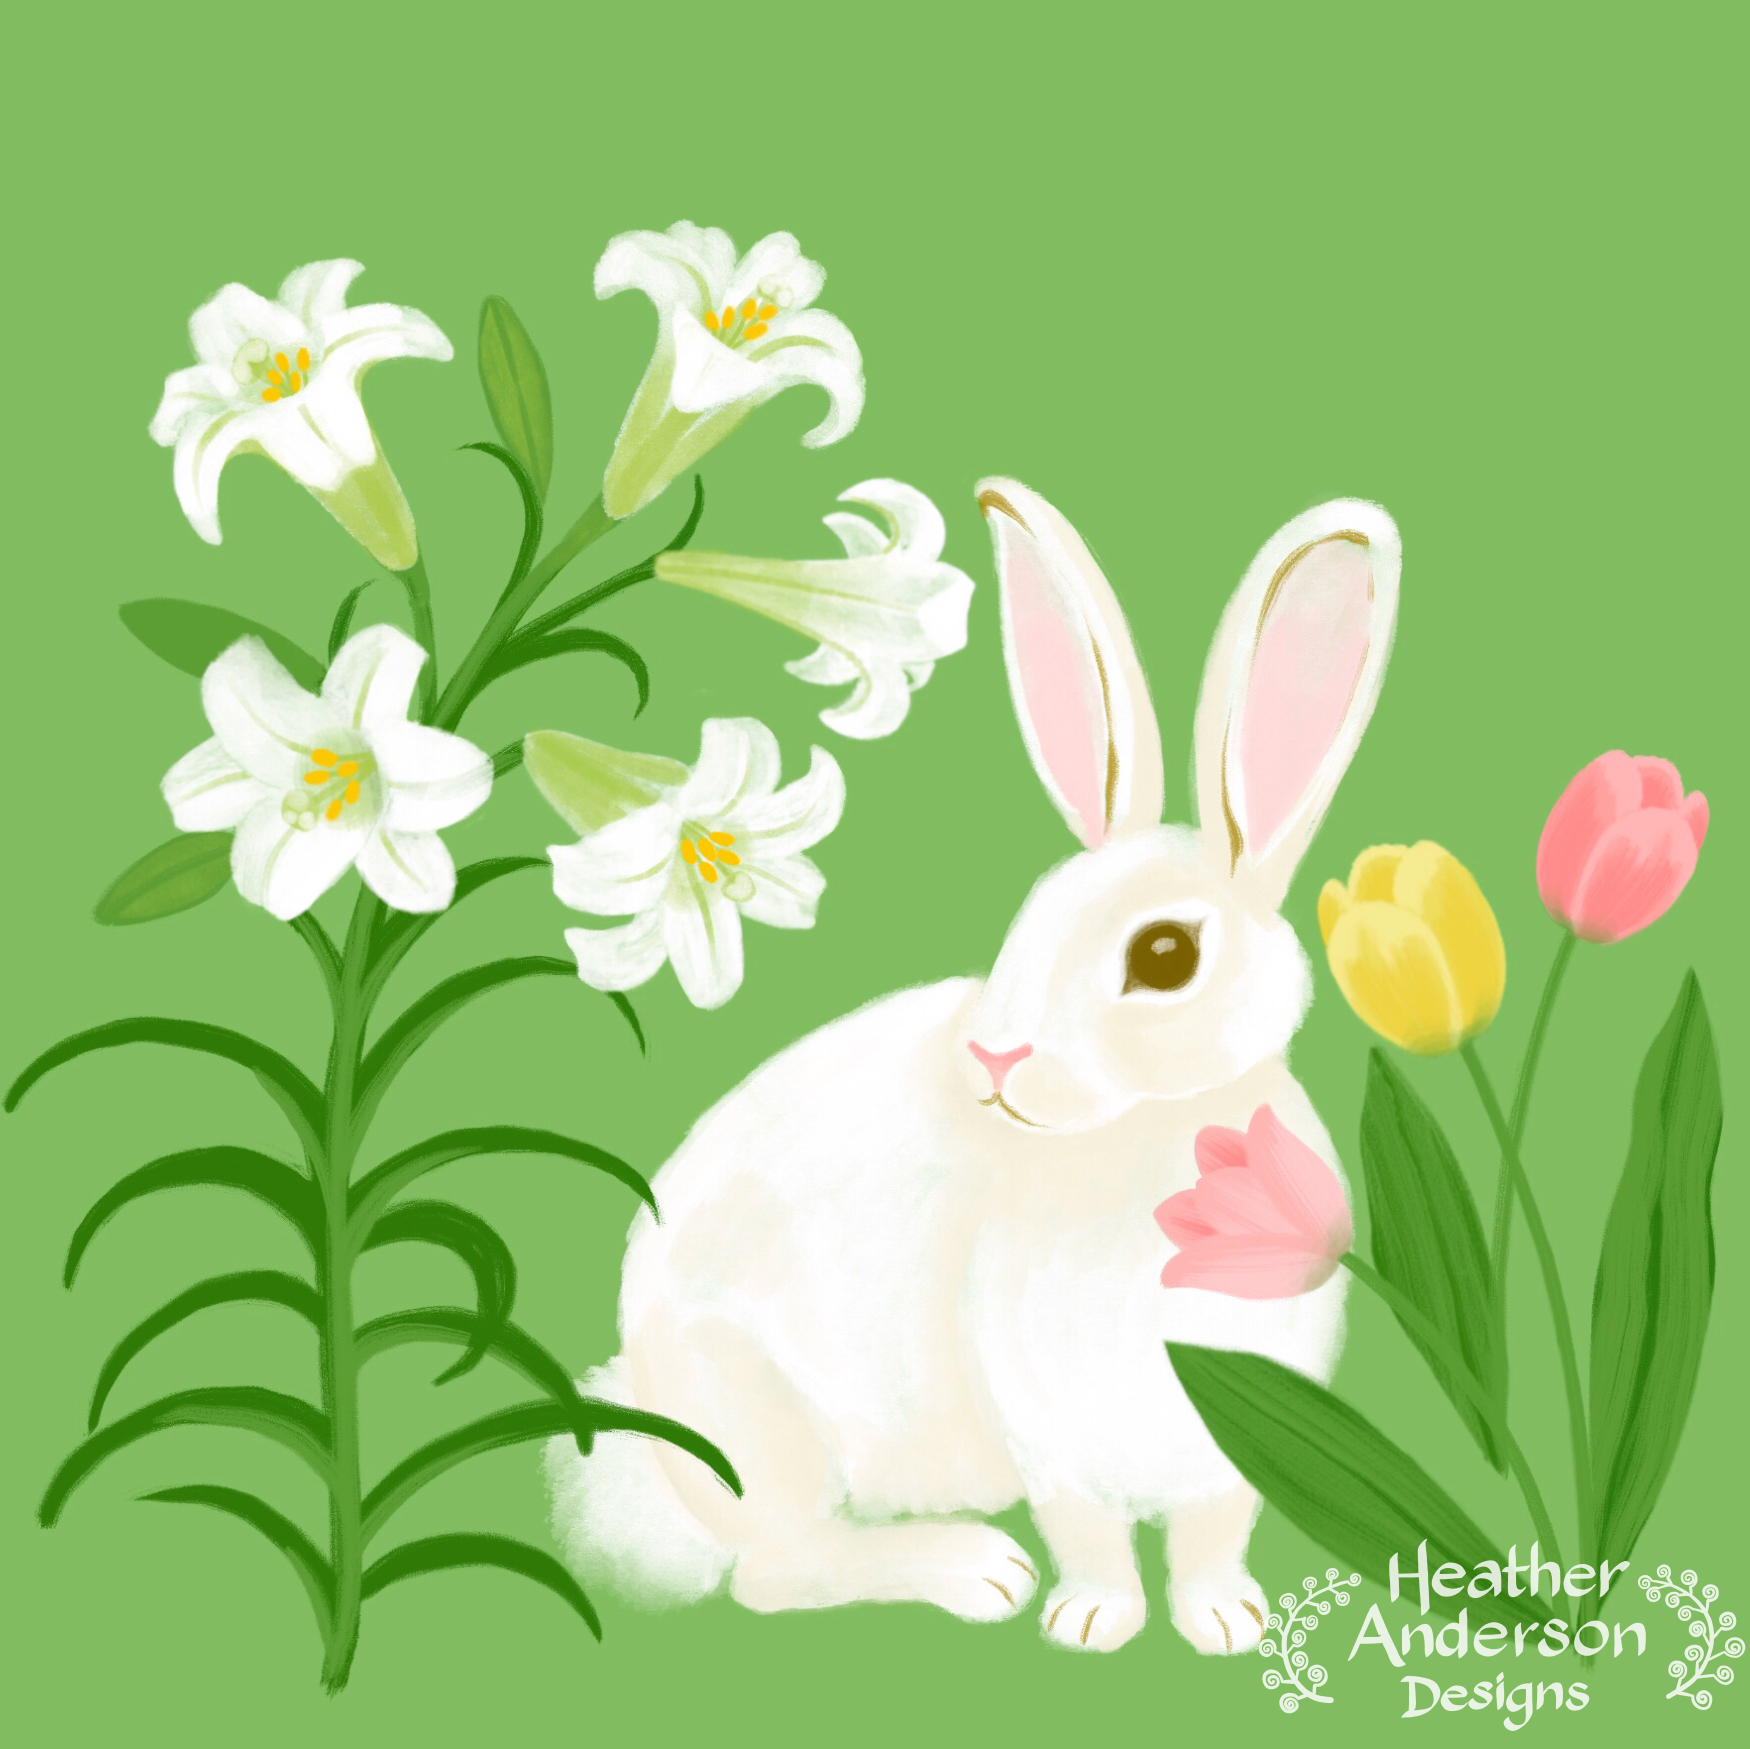 Heather Anderson Easter Rabbit